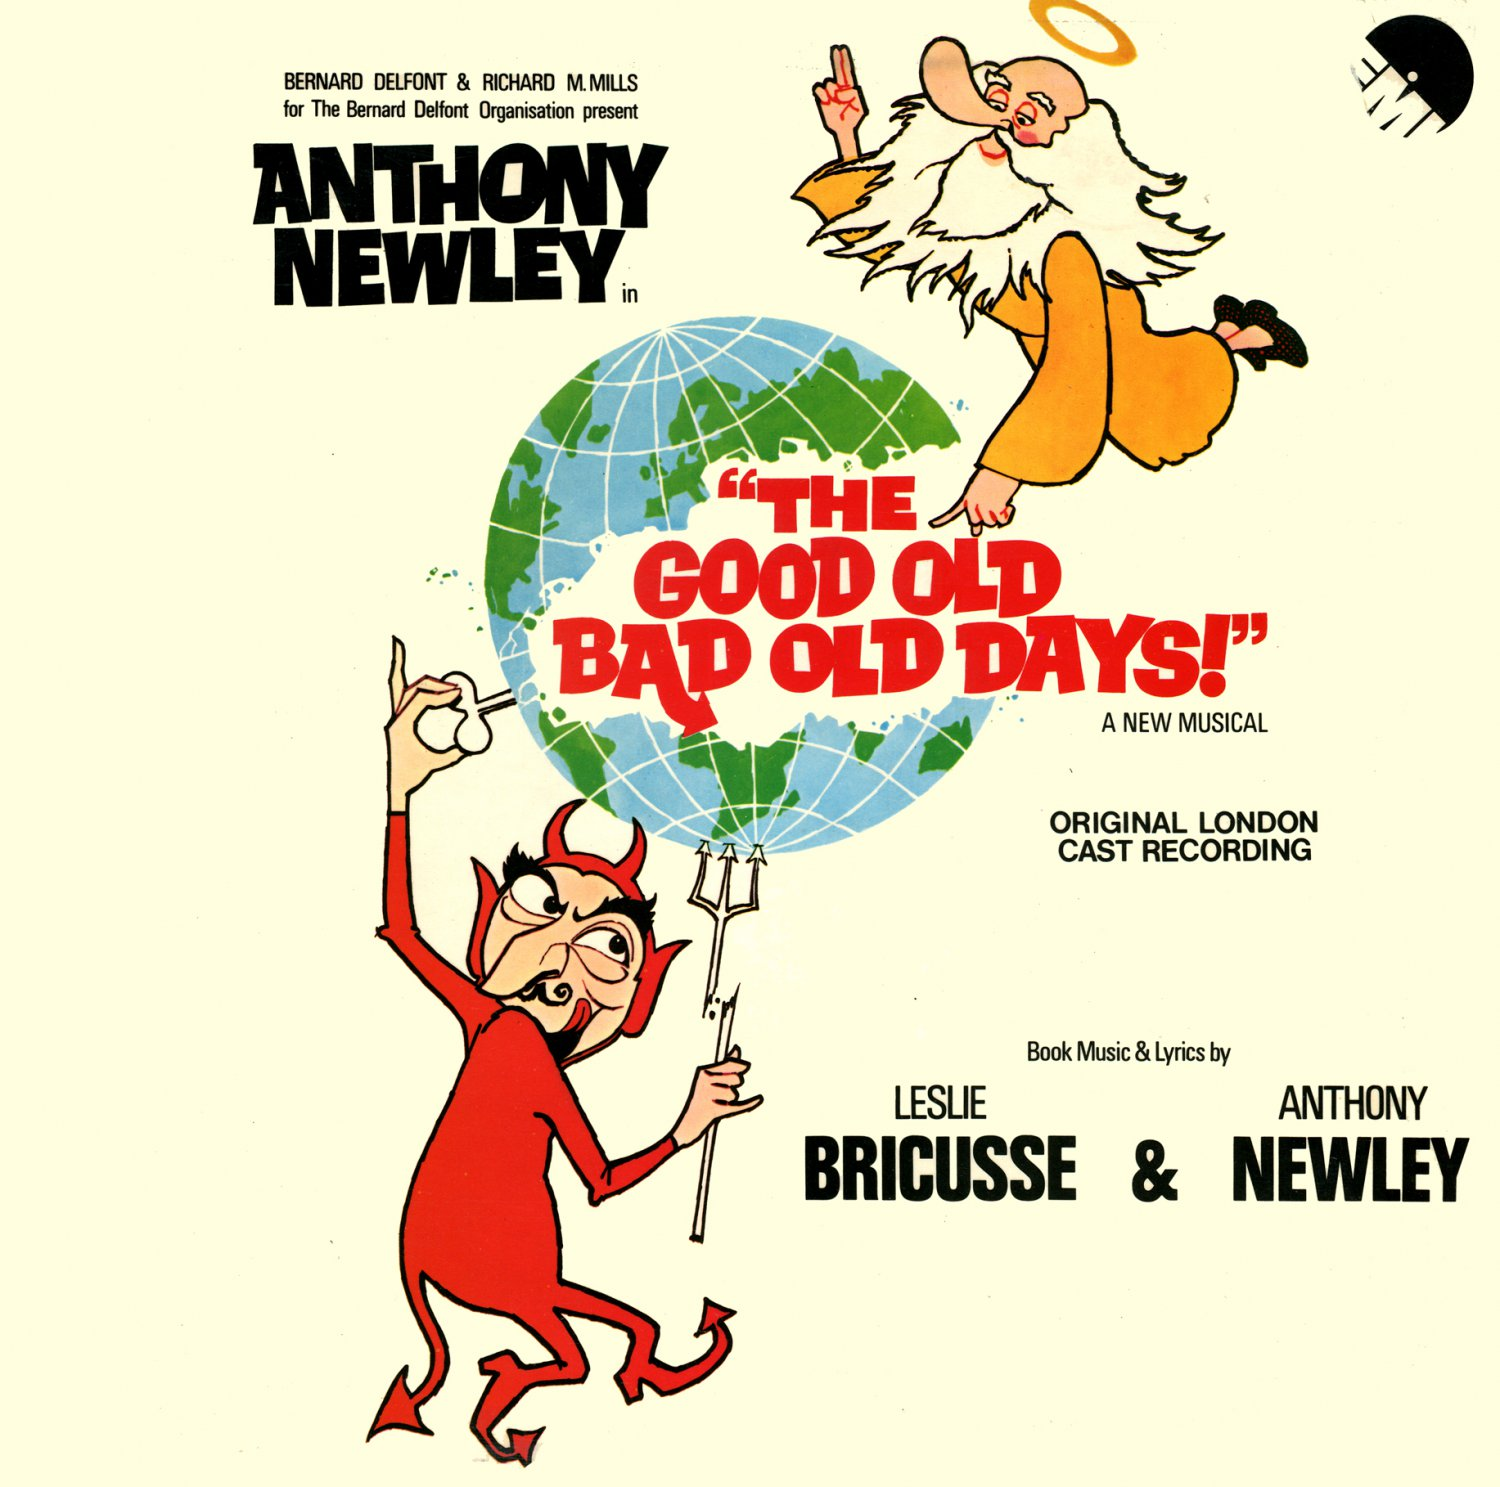 The Good Old Bad Old Days, A New Musical - Original London Cast Album, Anthony Newley LP/CD